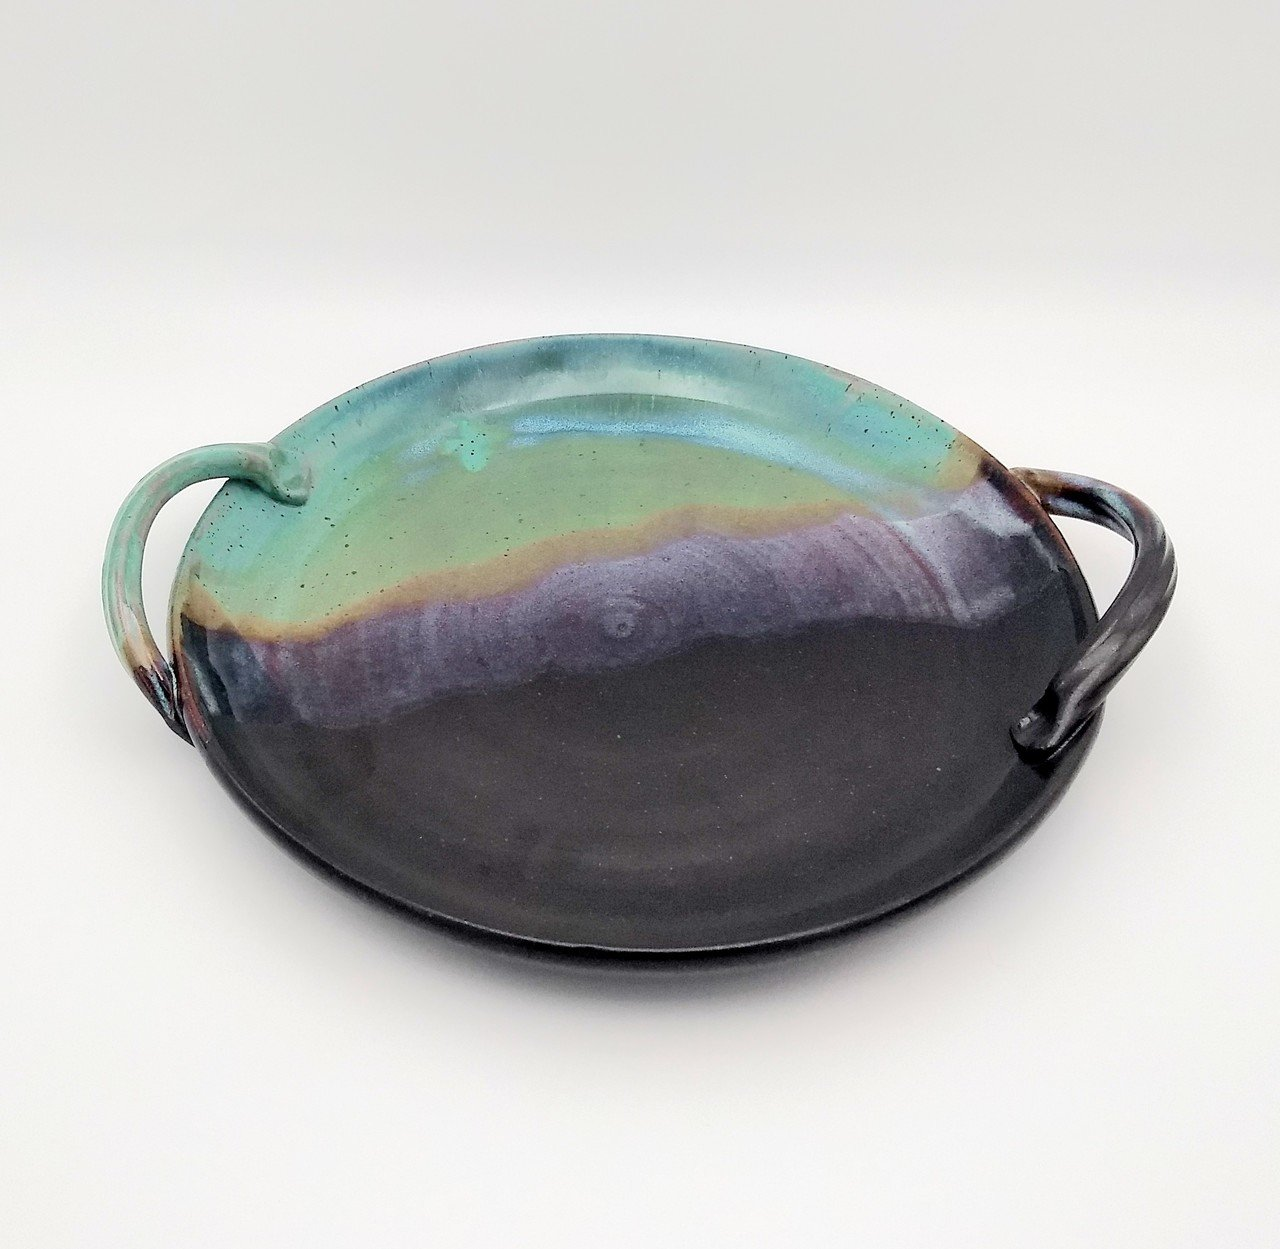 Clay Path Serving Platter - Green